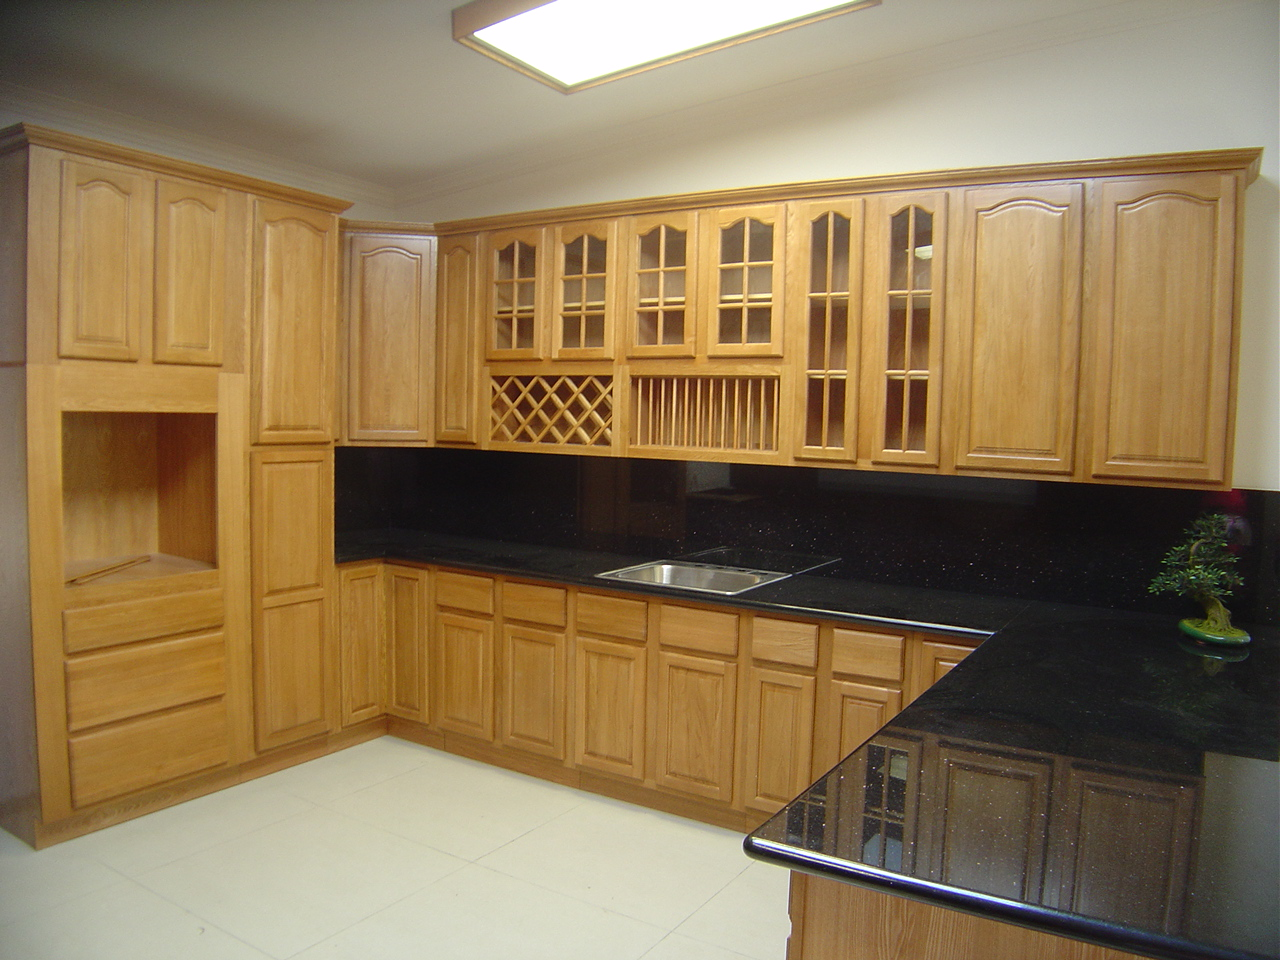 Special kitchen cabinet design and decor design interior for Interior design ideas for kitchen